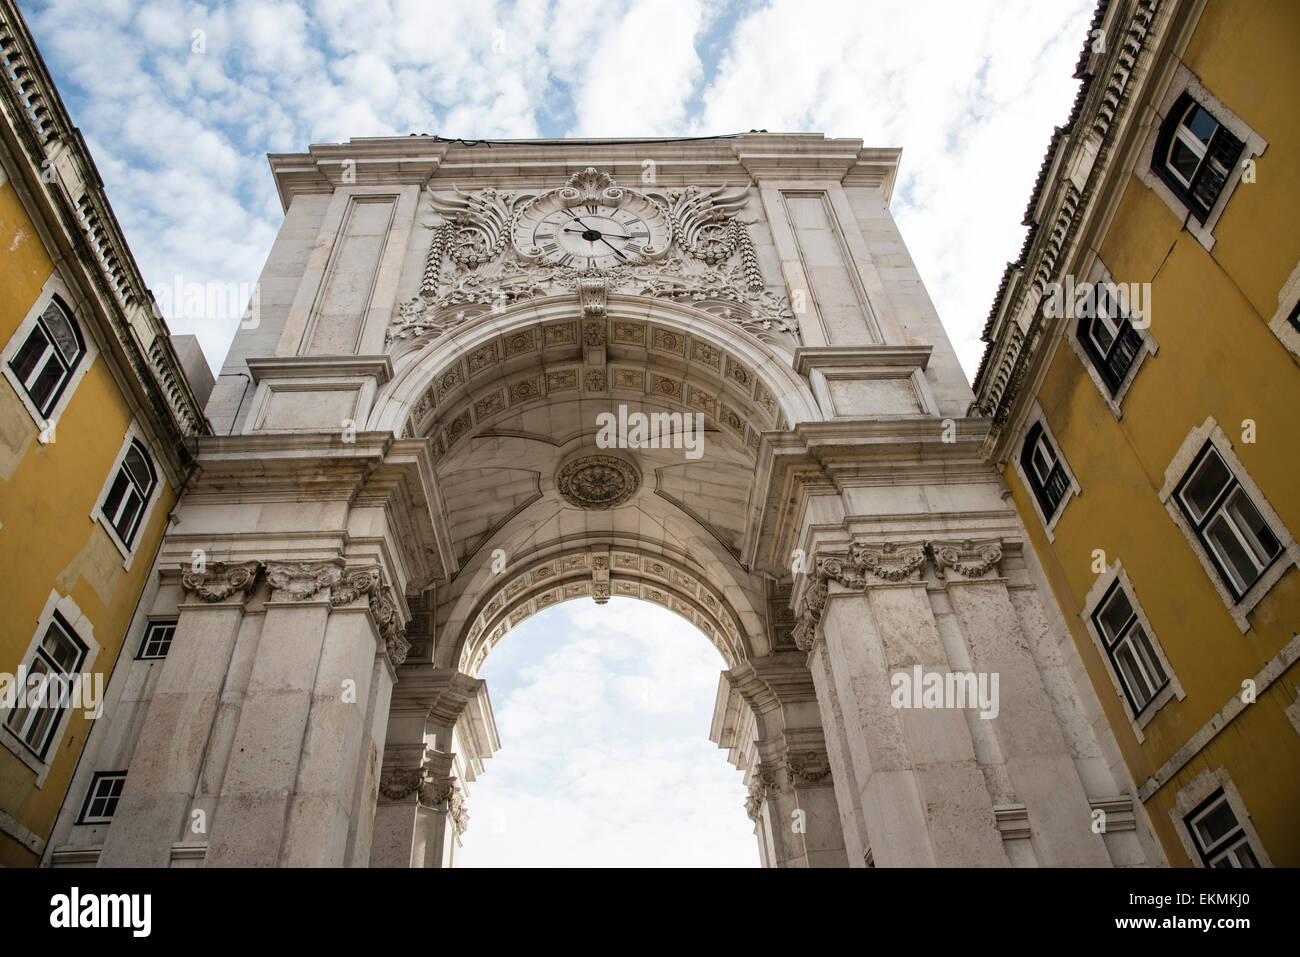 Rua Augusta Arch, Lisbon, Portugal, completed in 1873. - Stock Image